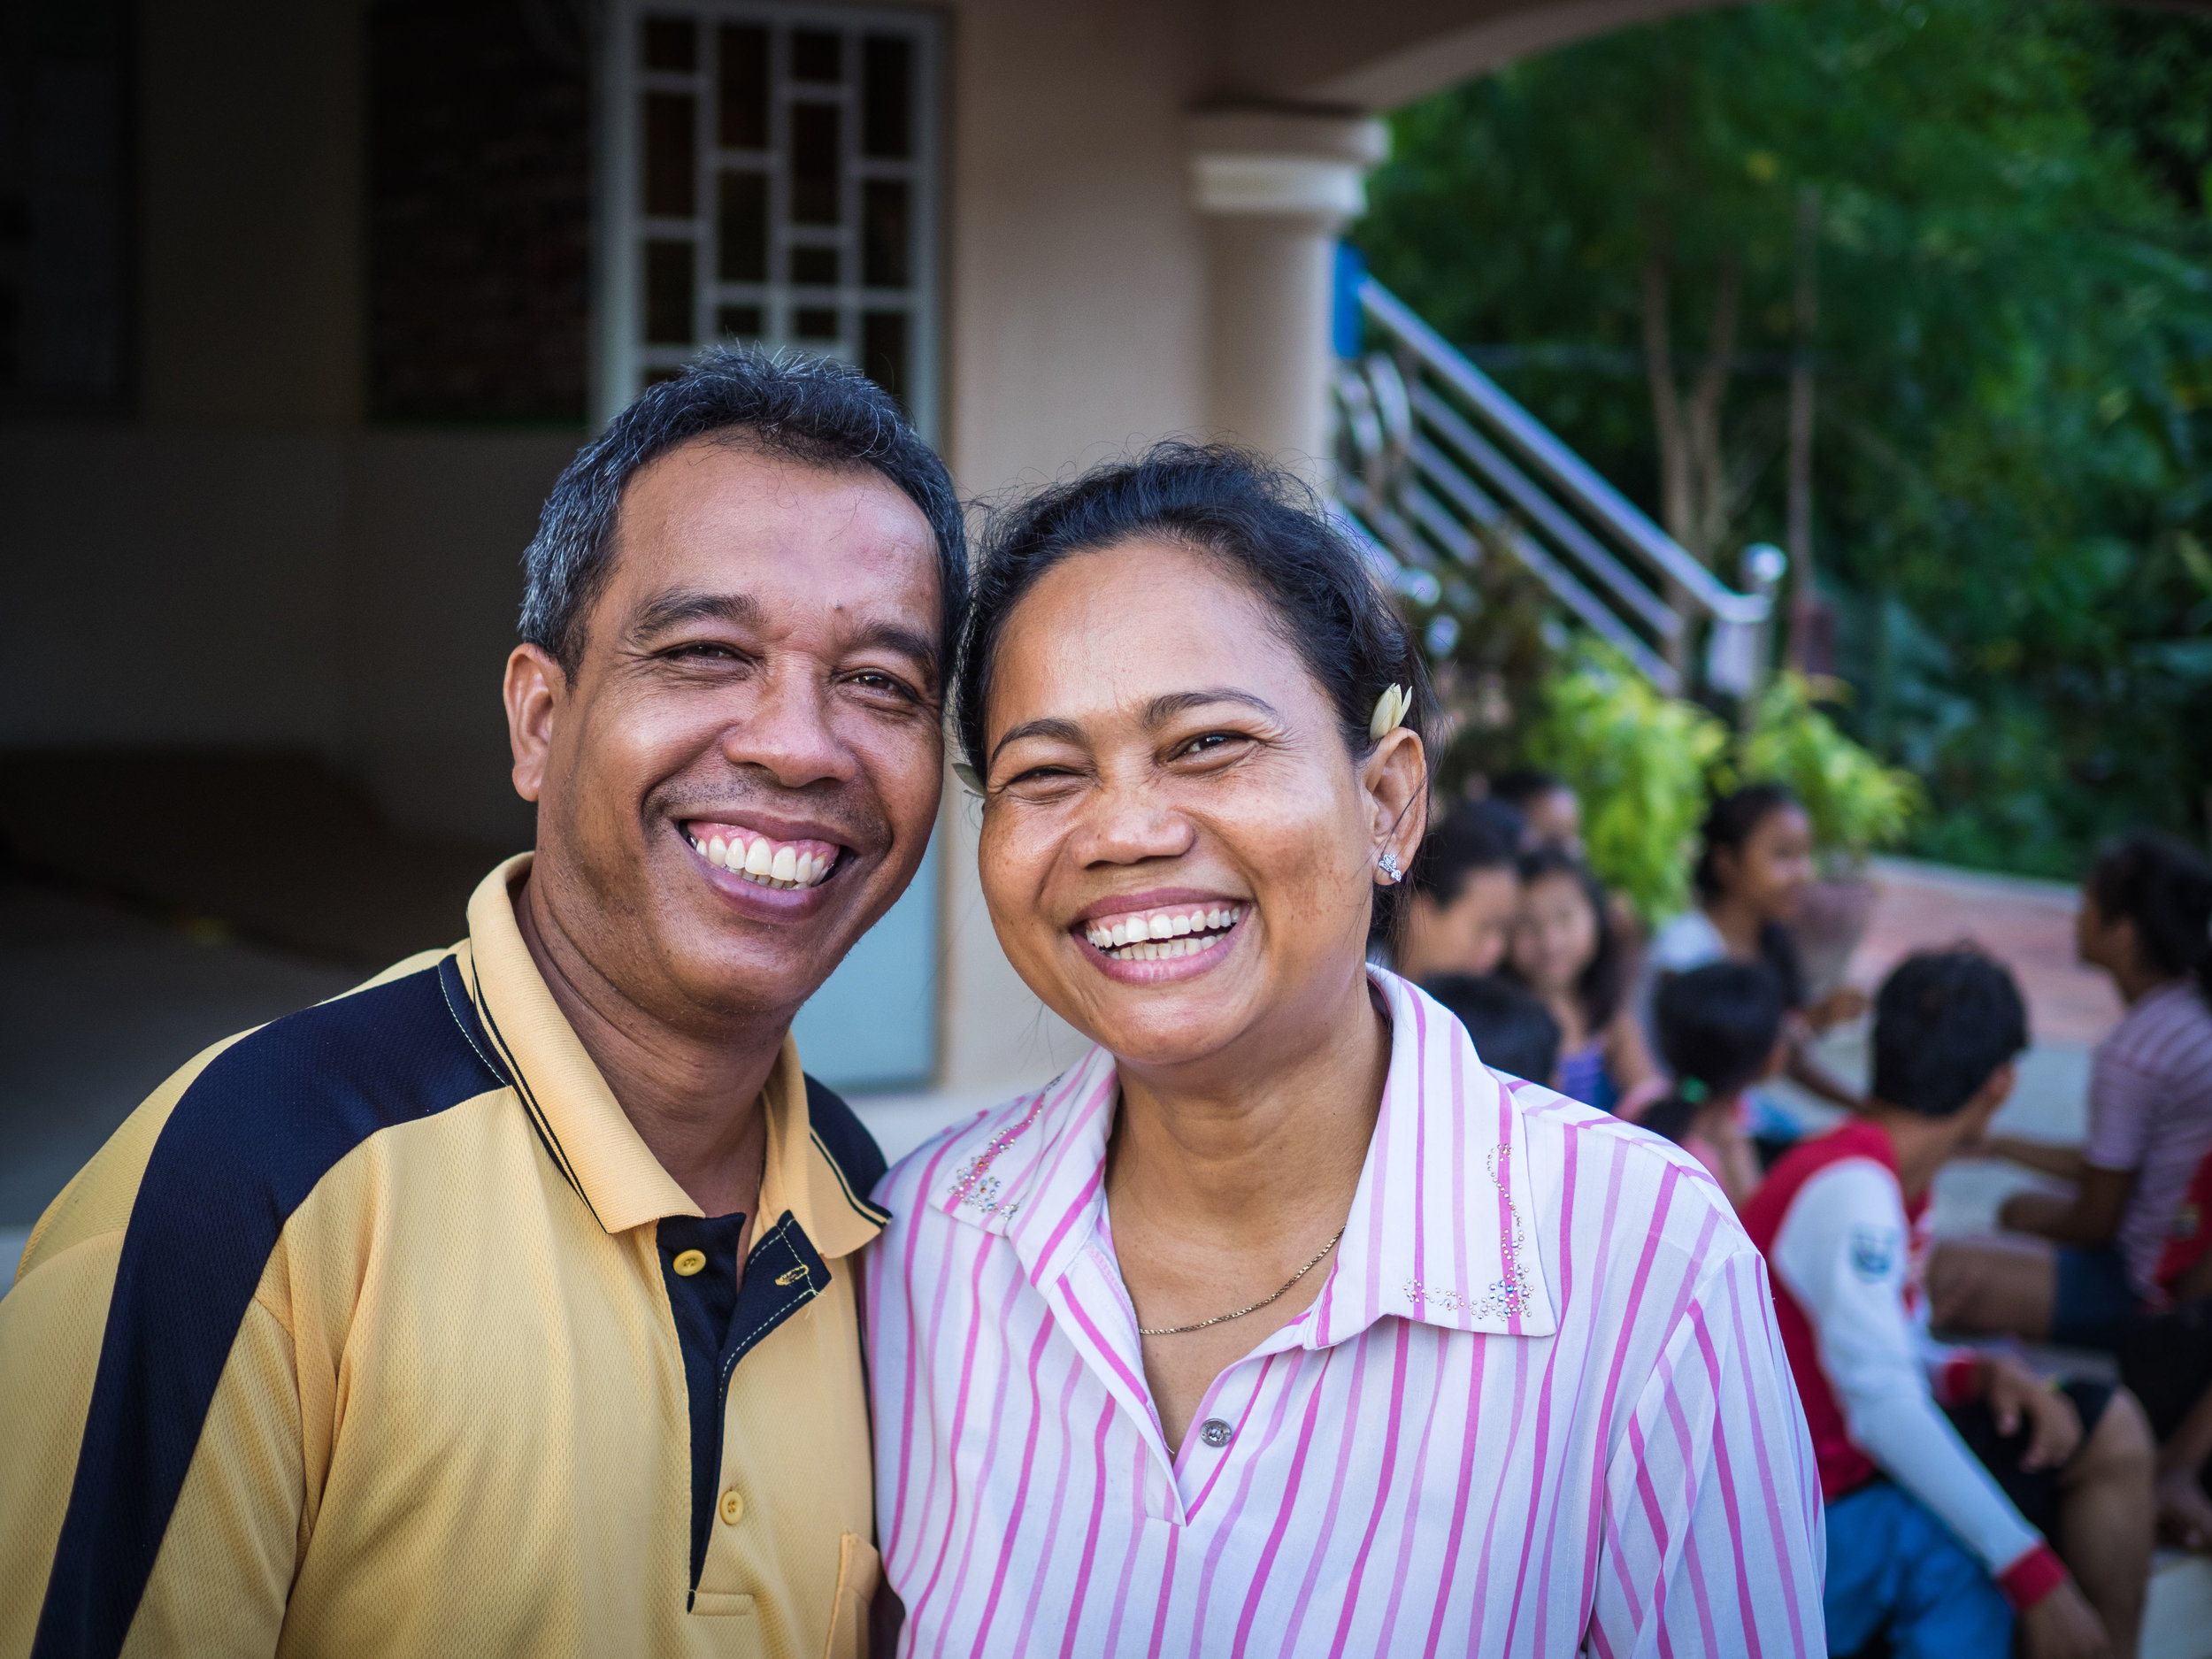 With a bit of sadness we wish Narun and Sophal — parents at the Prek Eng 2 home for 13 years —congratulations on their retirement and prayer for the next chapter of their lives.